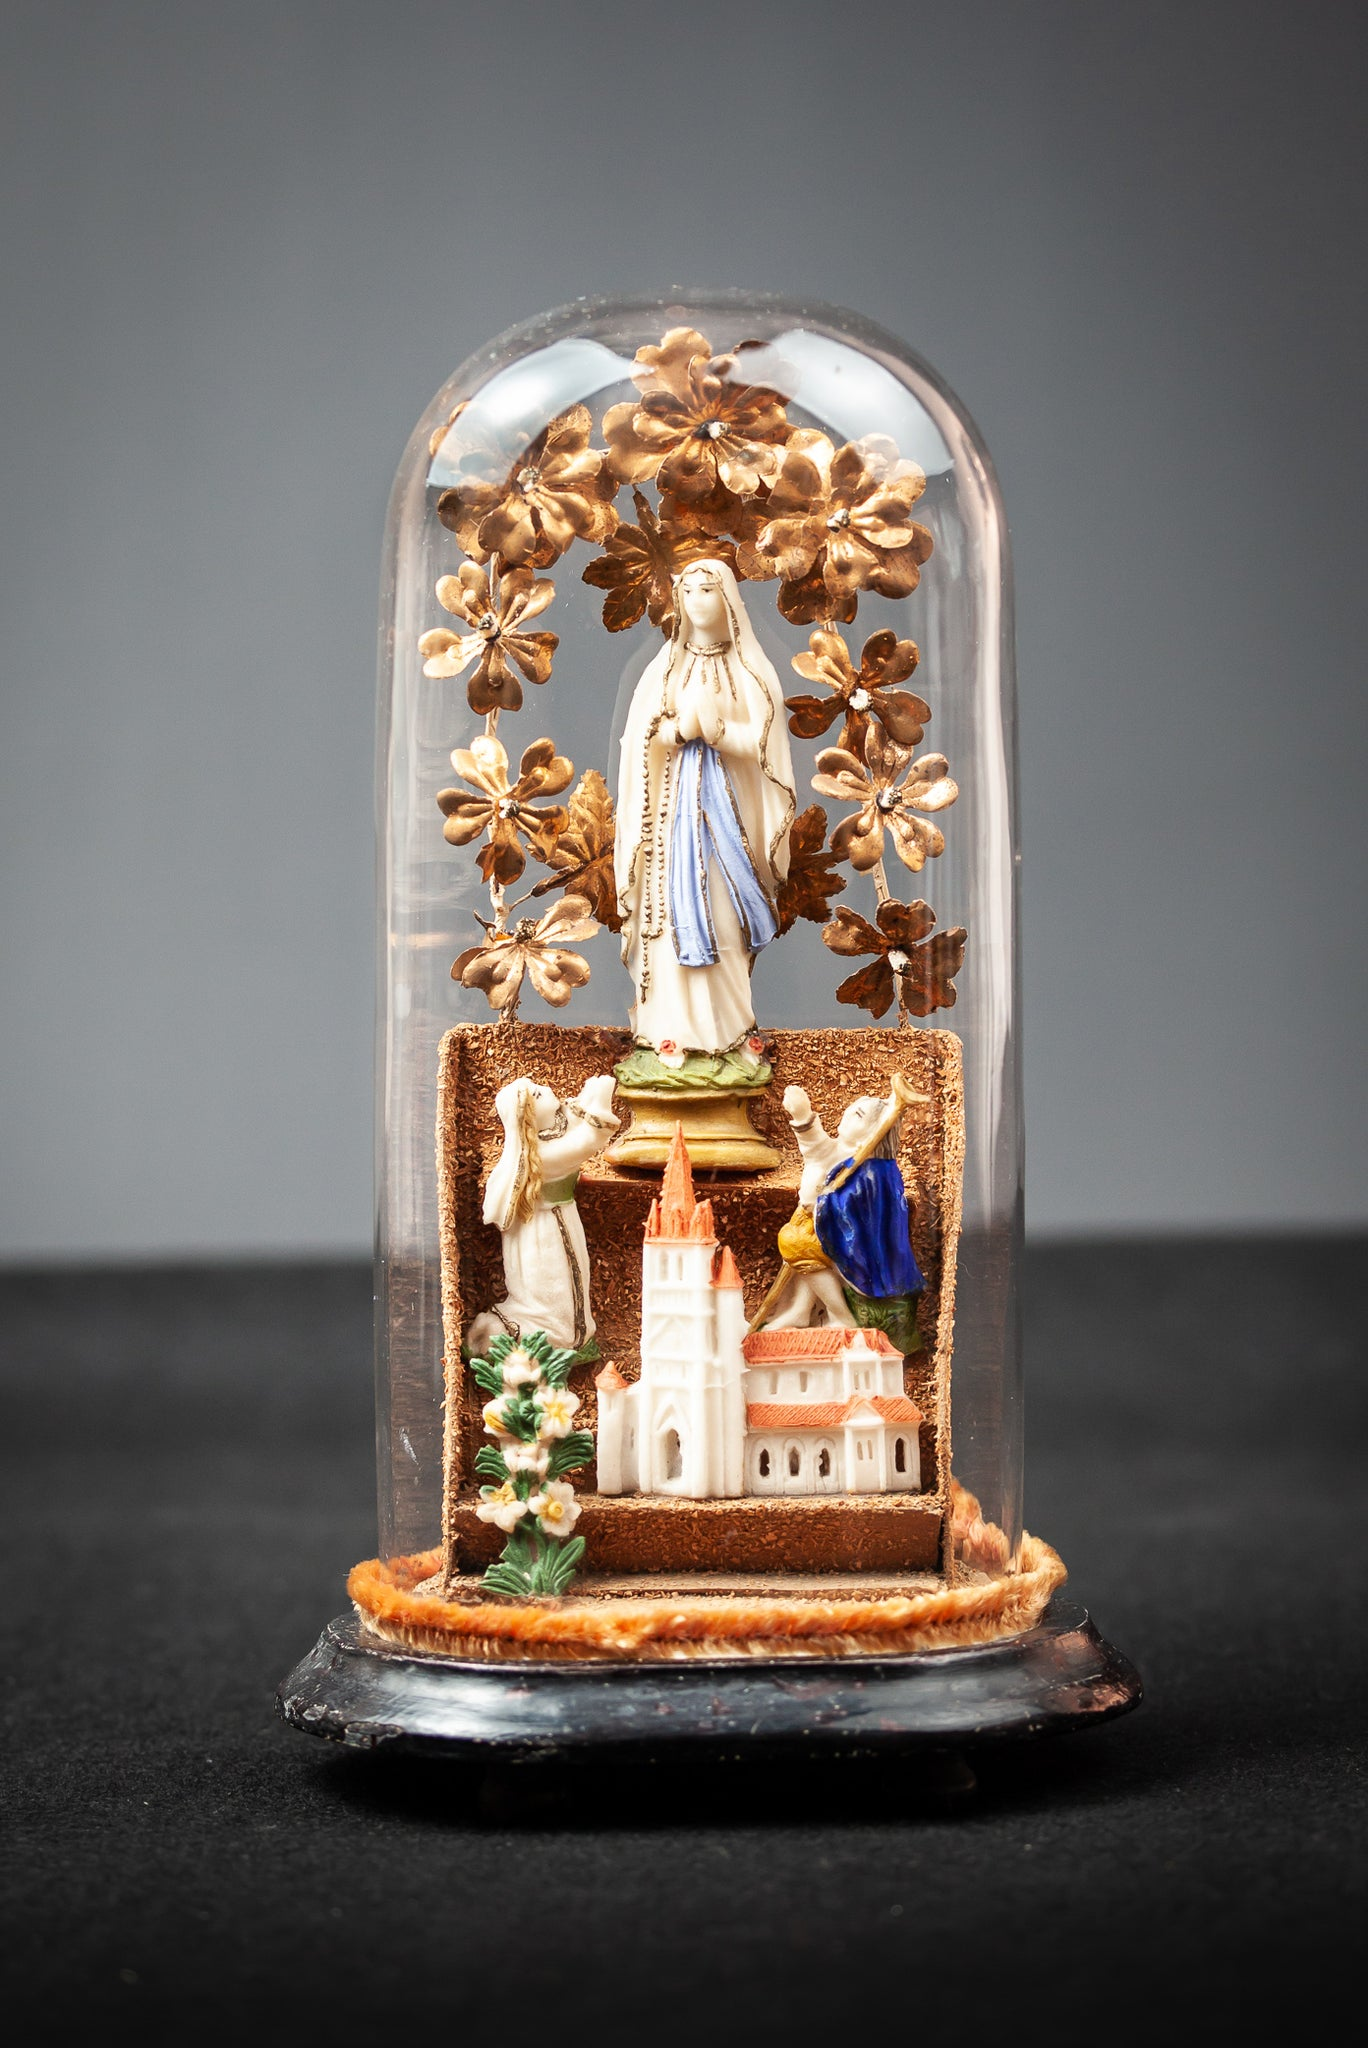 Virgin Mary Children Cathedral Tragacanth Artwork Glass DomeVirgin Mary Children Cathedral Tragacanth Artwork Glass Dome